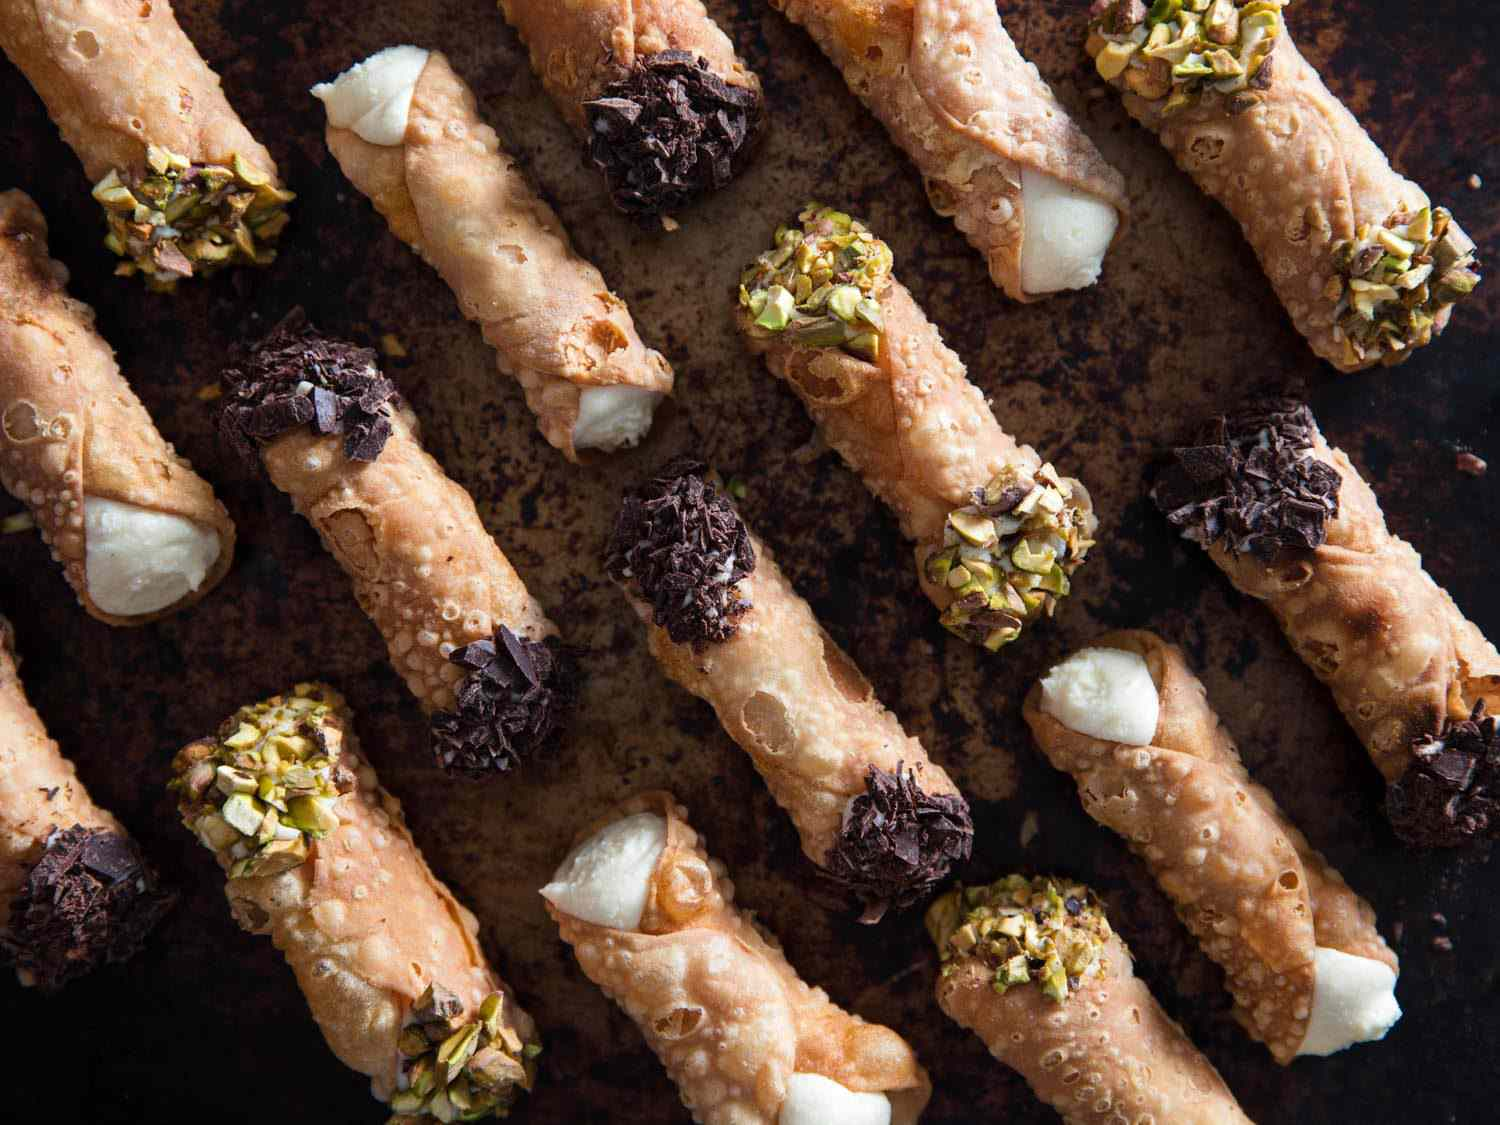 Homemade cannolis with pistachio and dark chocolate